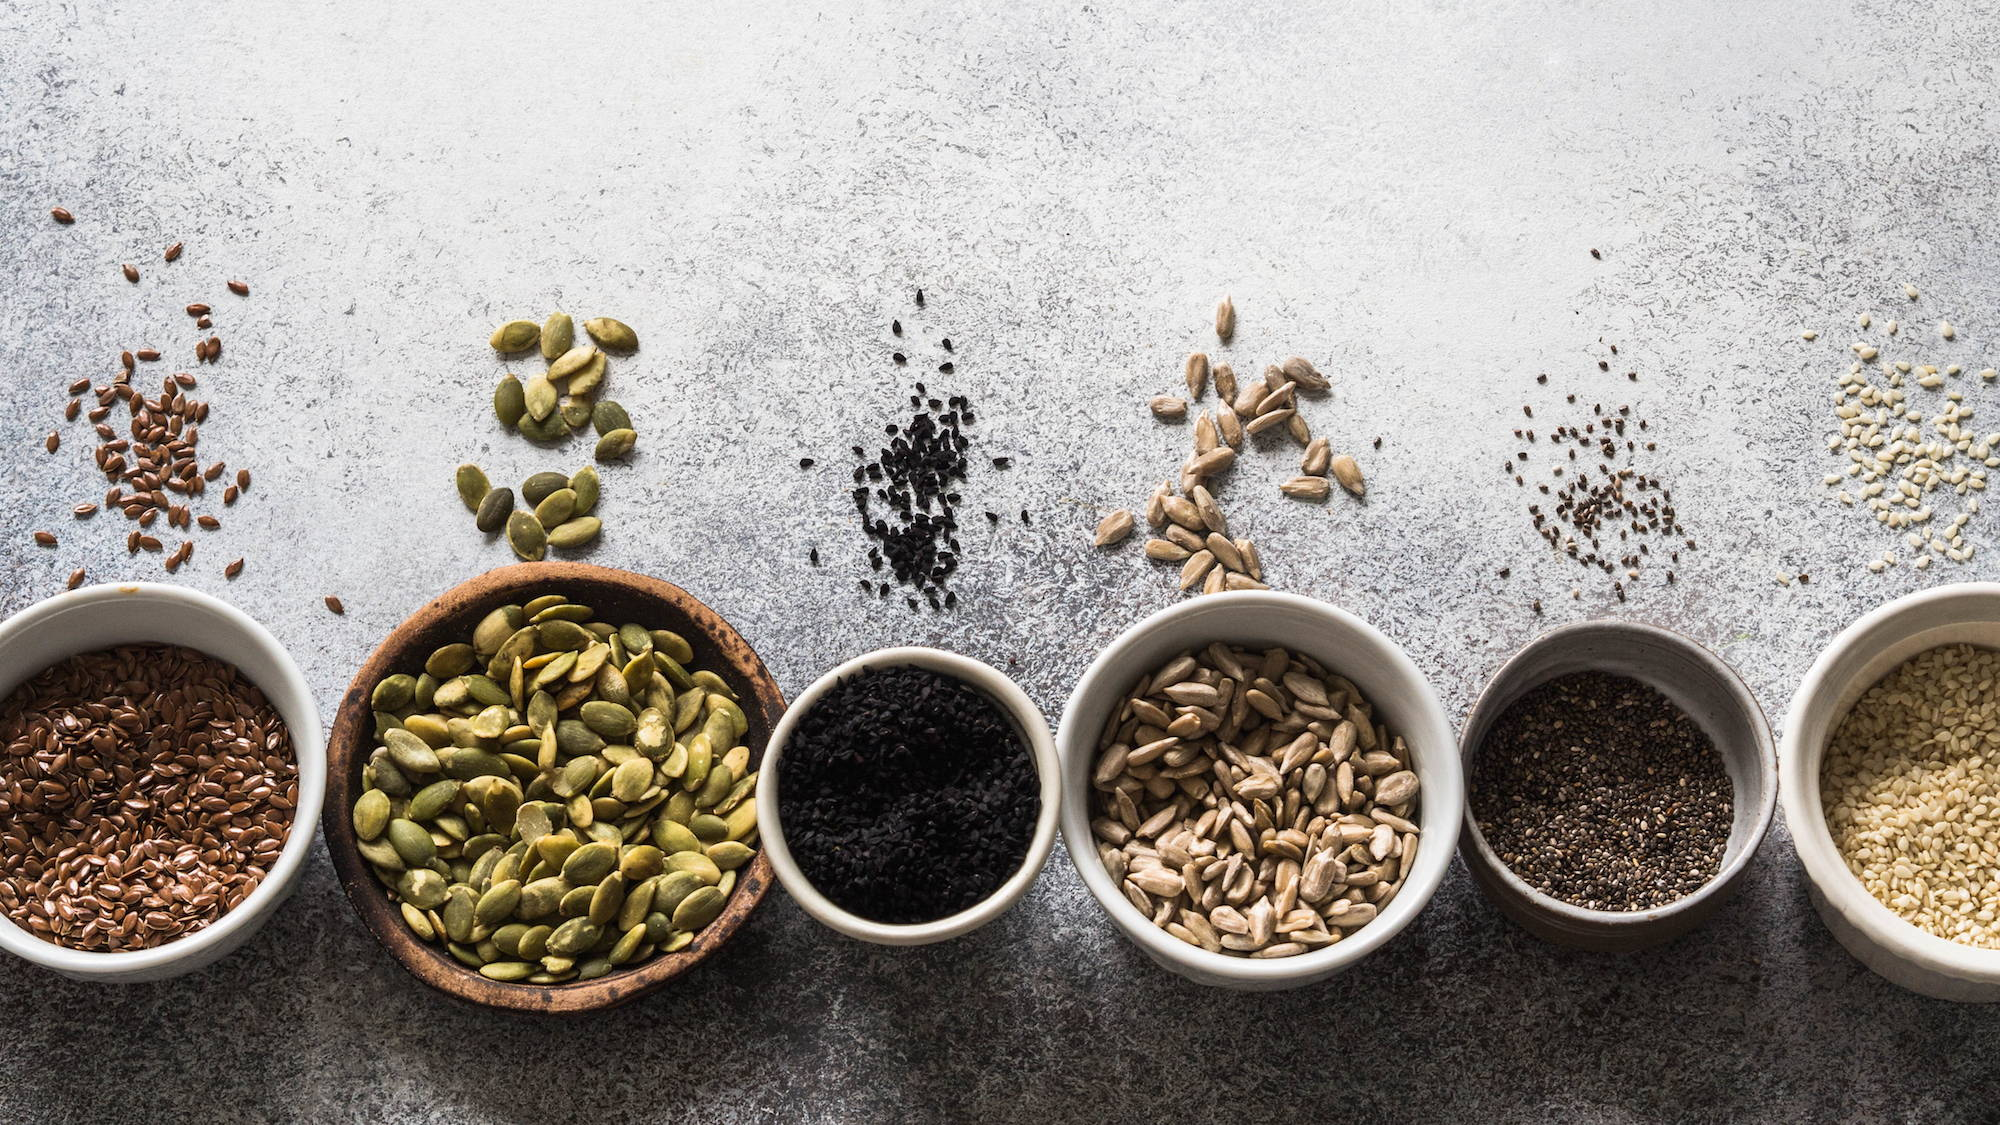 Seeds are a source of protein in the diet